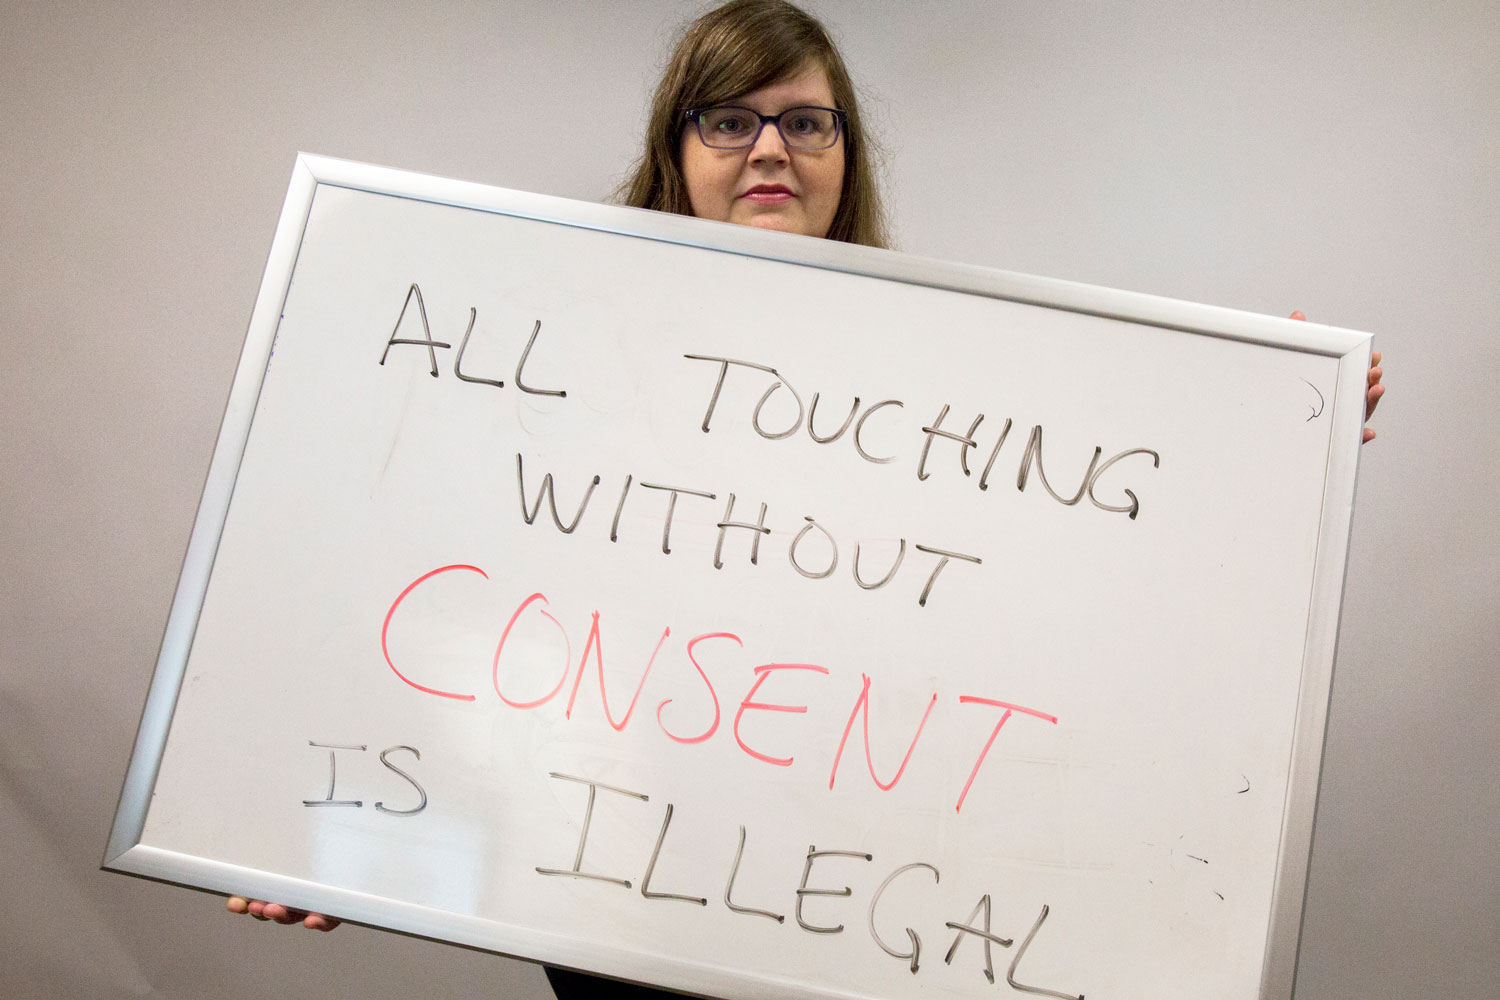 """Jean Abshire, associate professor of political science and international studies encourages sexual assault victims to seek counseling. """"It's not something they have to go through on their own,"""" Abshire said. """"Reach out to others and build a support network. Don't struggle through it by yourself, and if you can, prosecute."""""""